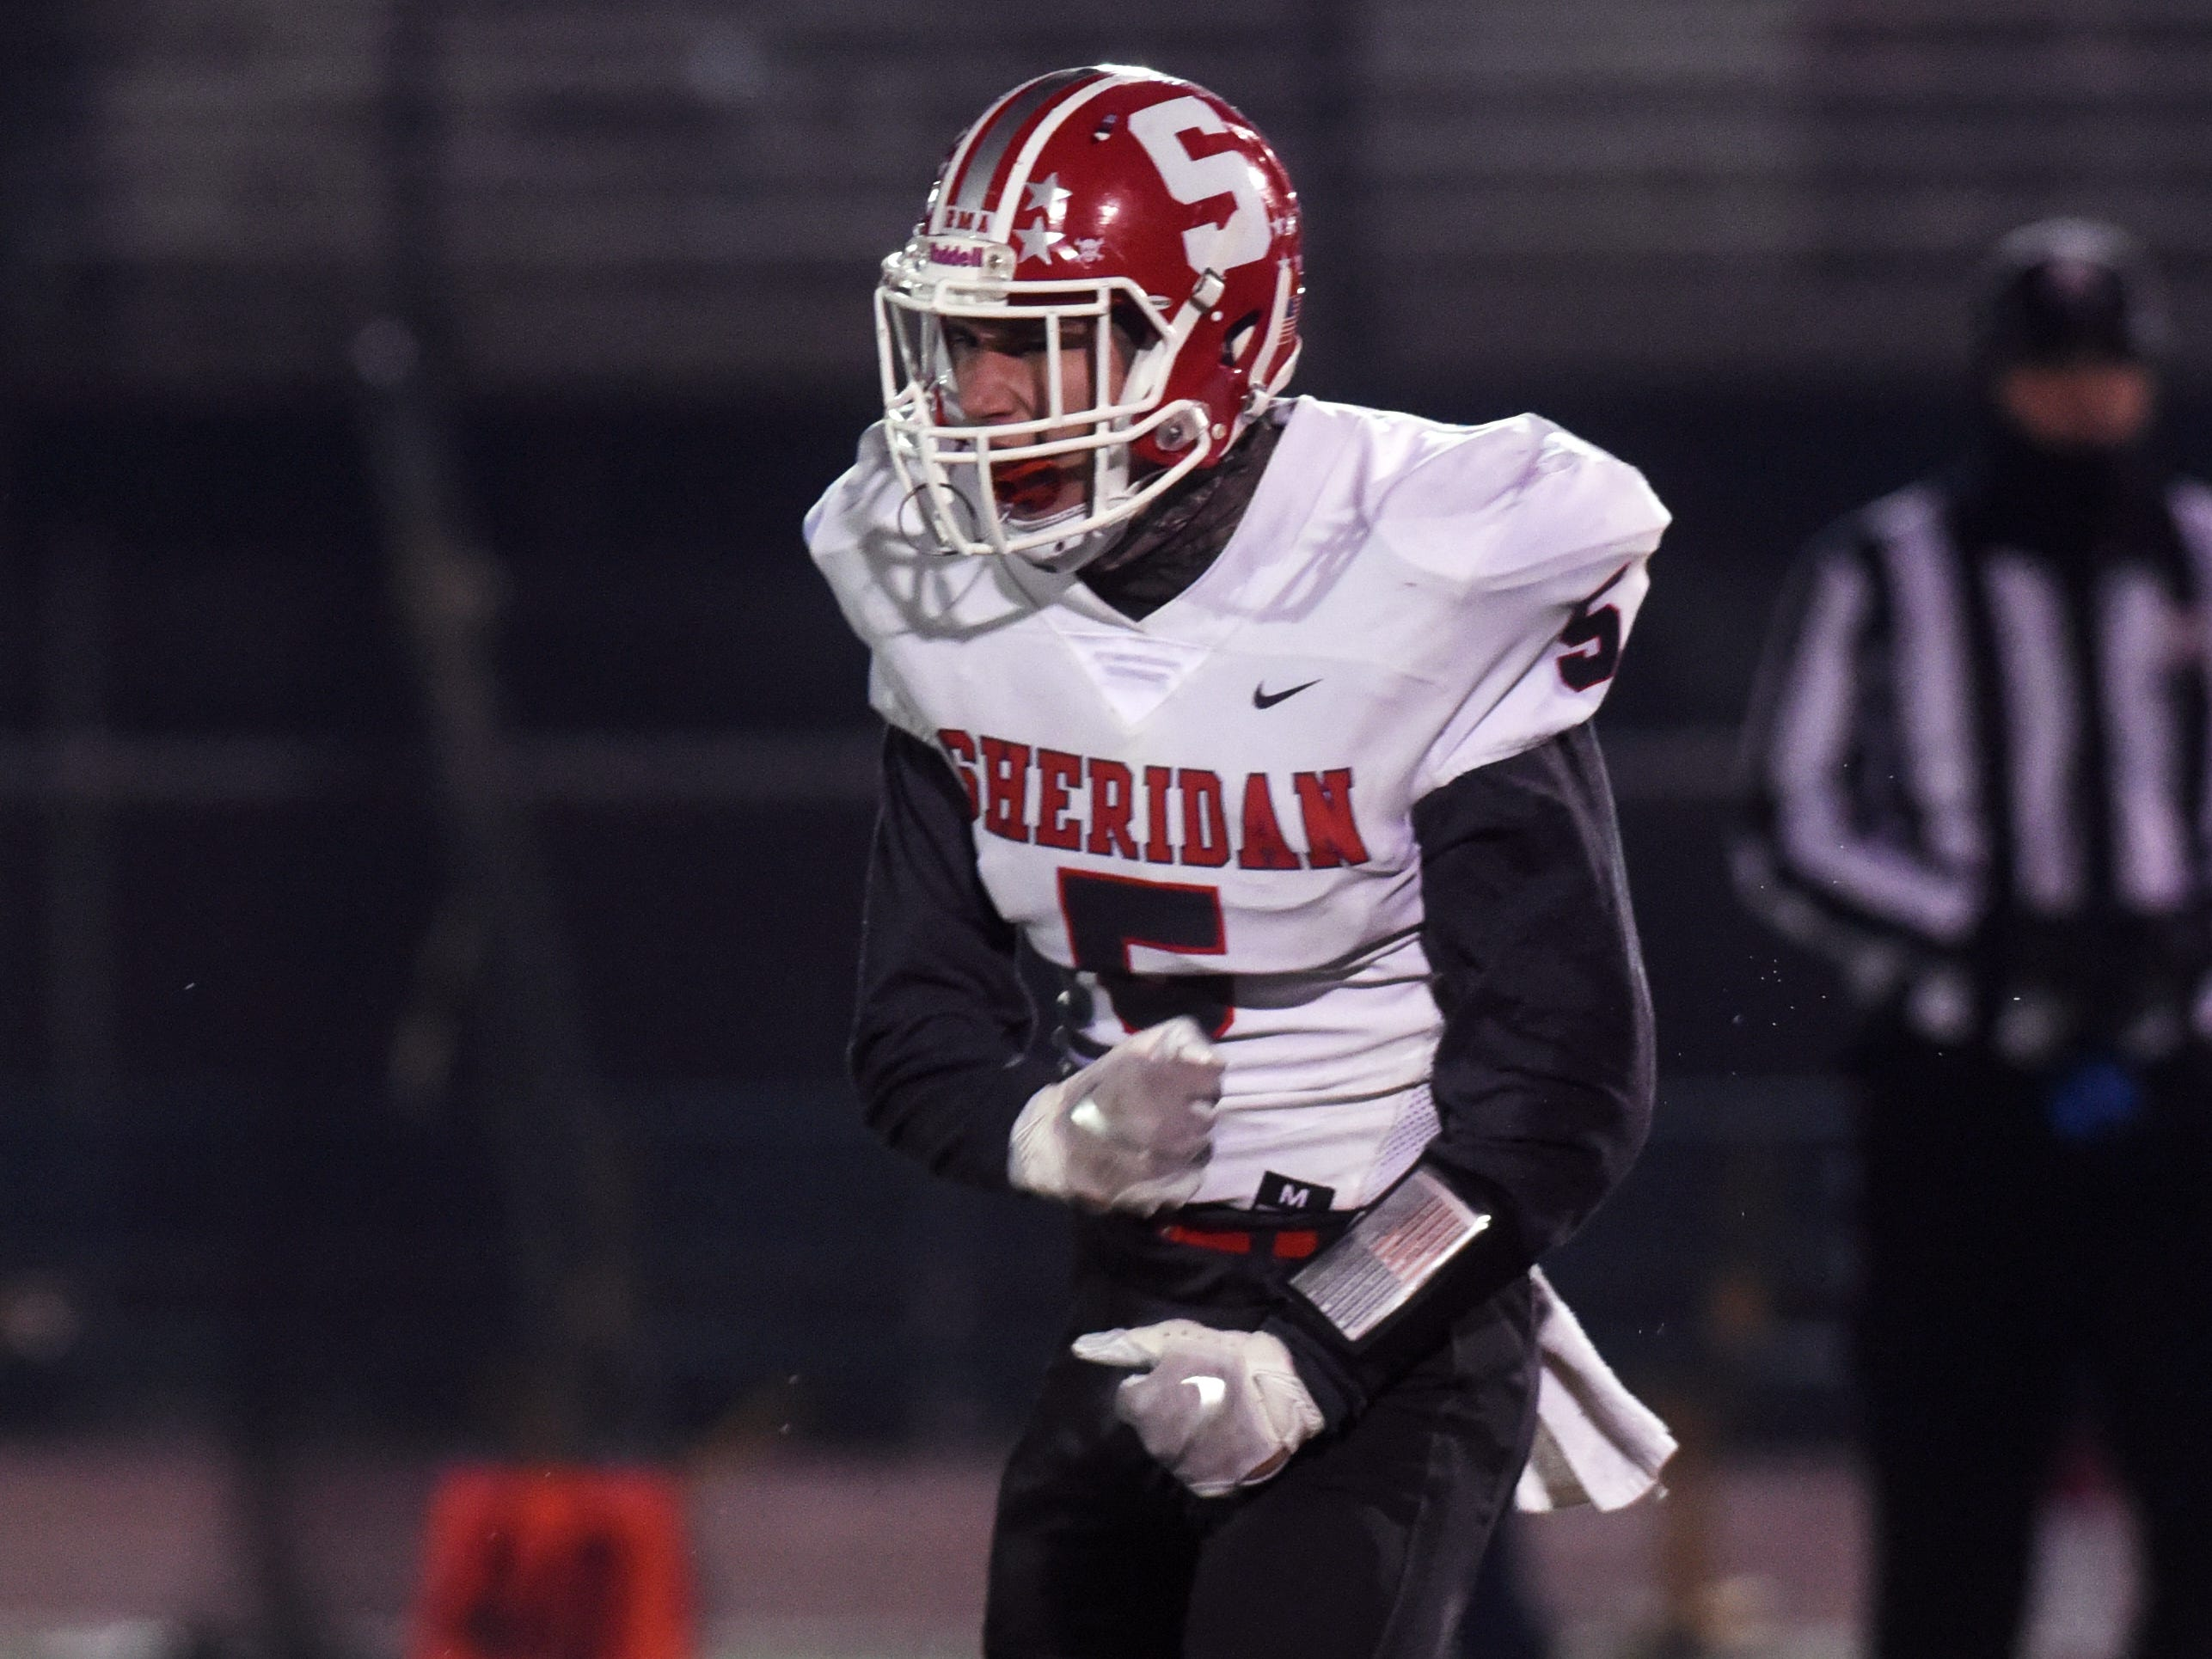 Shay Taylor celebrates a sack just before halftime during Sheridan's 20-14 loss to Columbus Eastmoor Academy in a Division III, Region 11 final on Friday night in Lancaster.